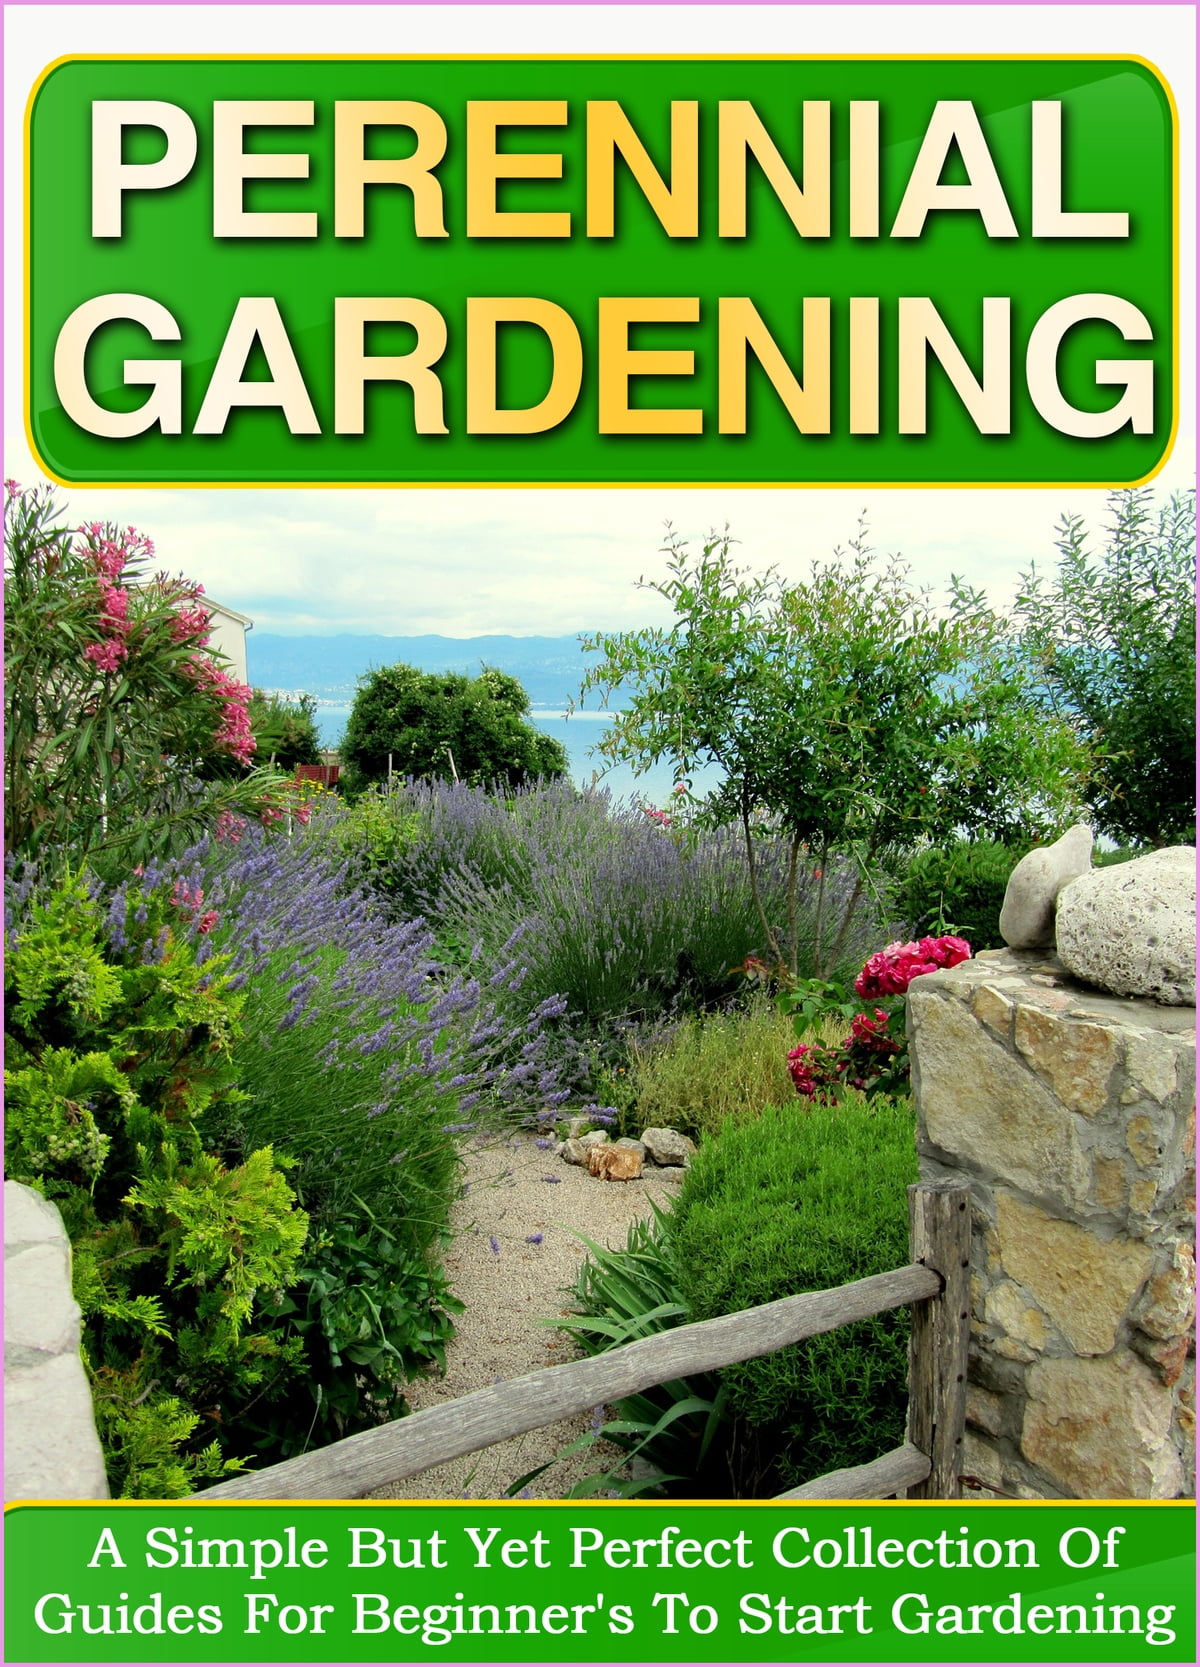 Perennial Gardening A Simple But Yet Perfect Collection Of Guides